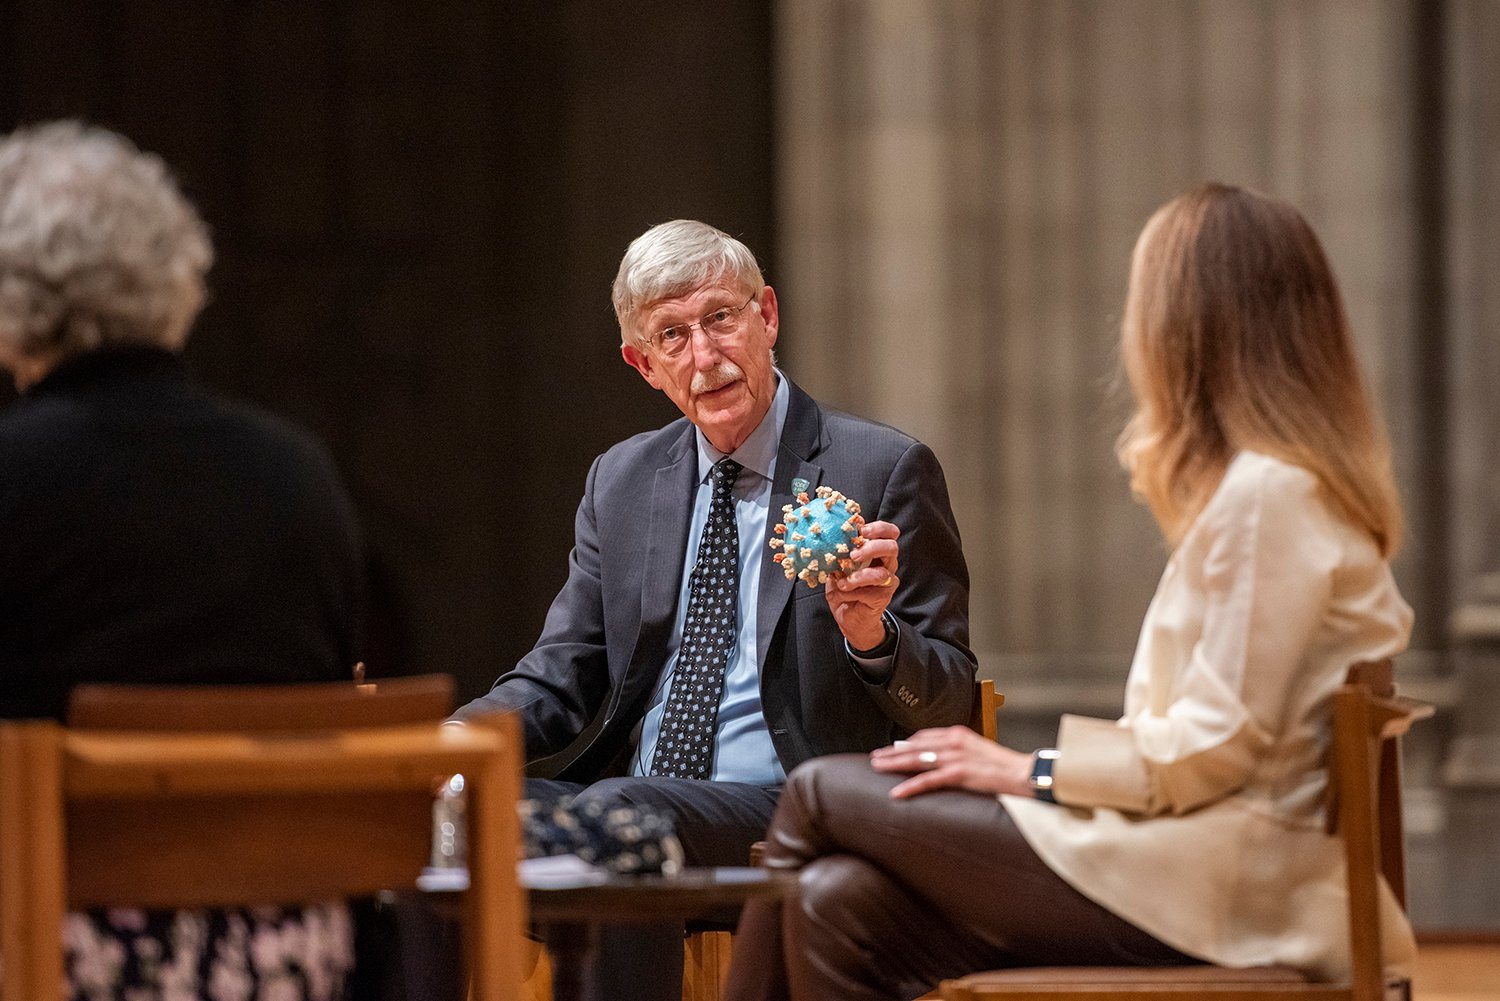 Dr. Francis Collins speaks at the the Ignatius Forum at the Washington National Cathedral. Image courtesy of Danielle E. Thomas/Washington National Cathedral